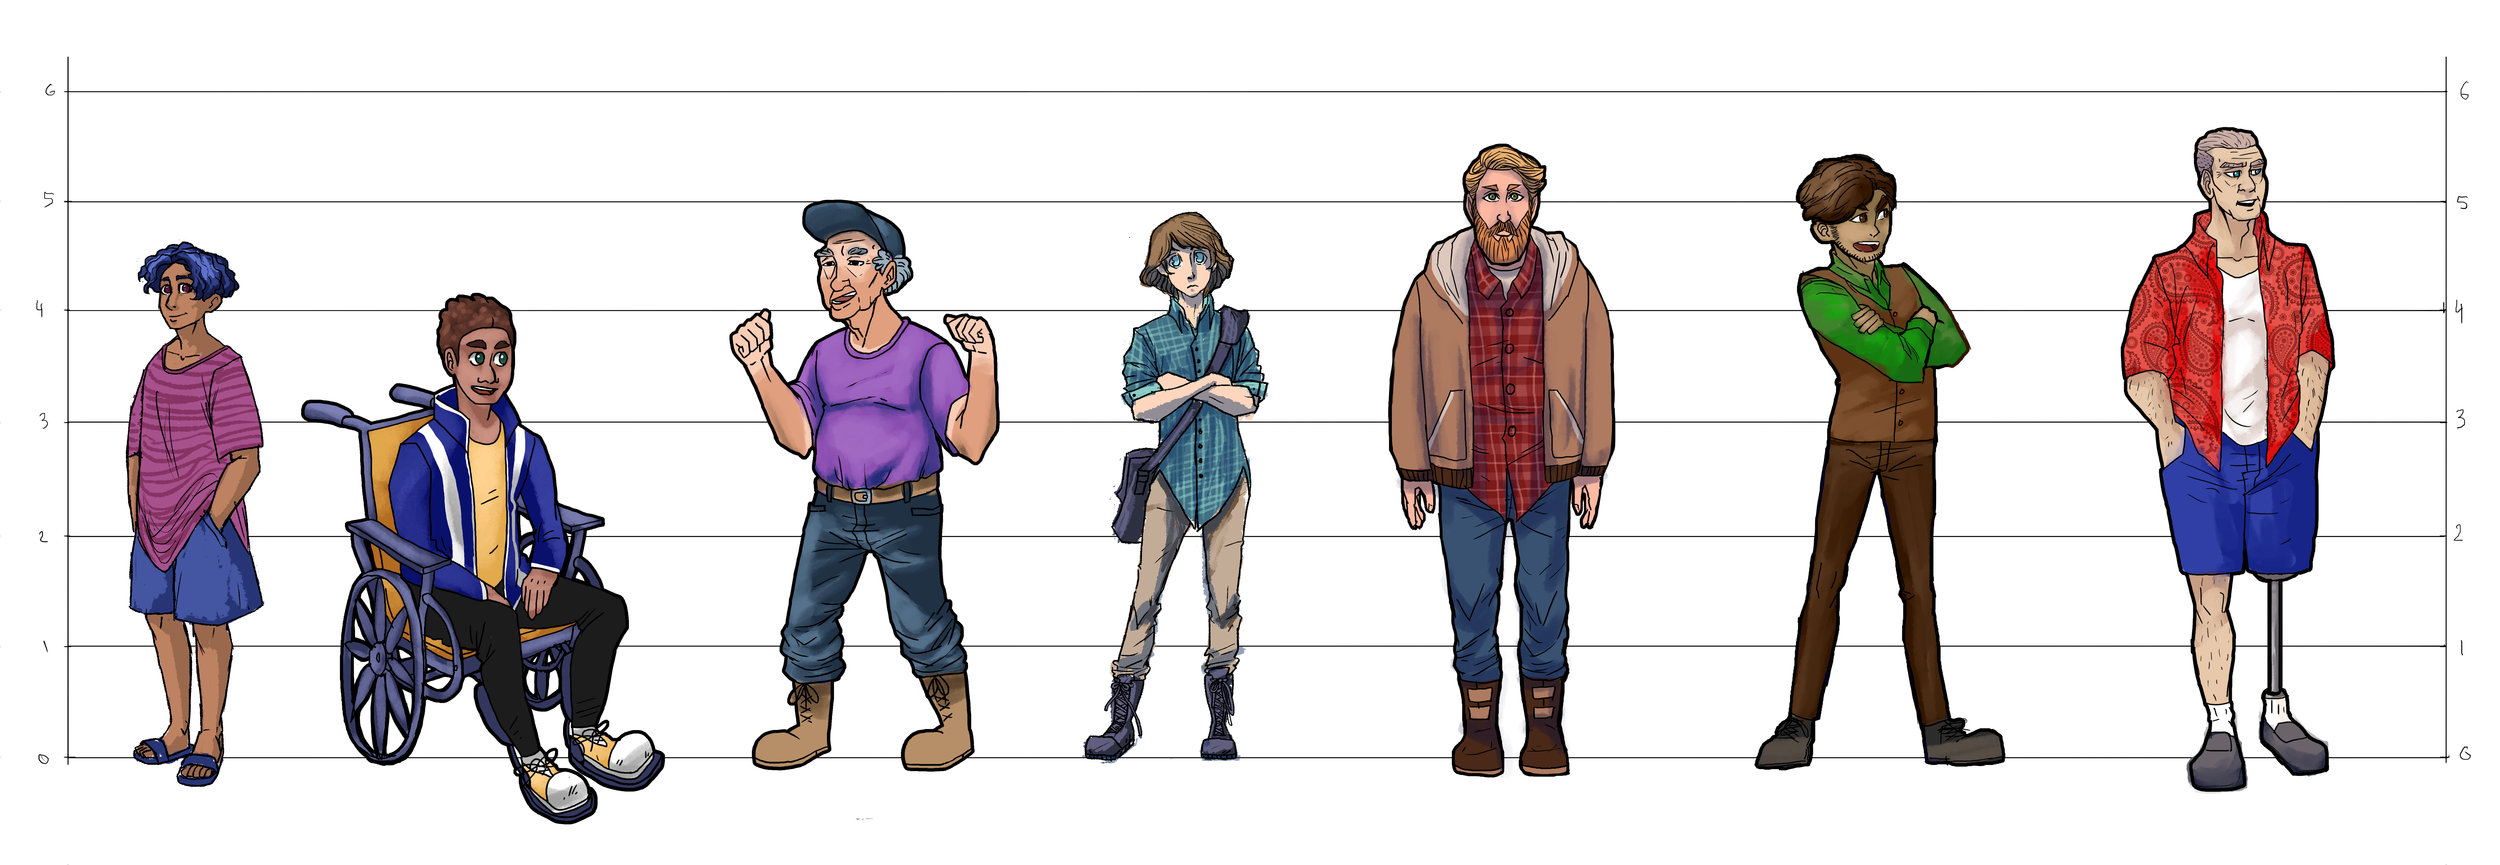 CharacterConcepts_LineUp_Males_v3_JessicaGreving.jpg